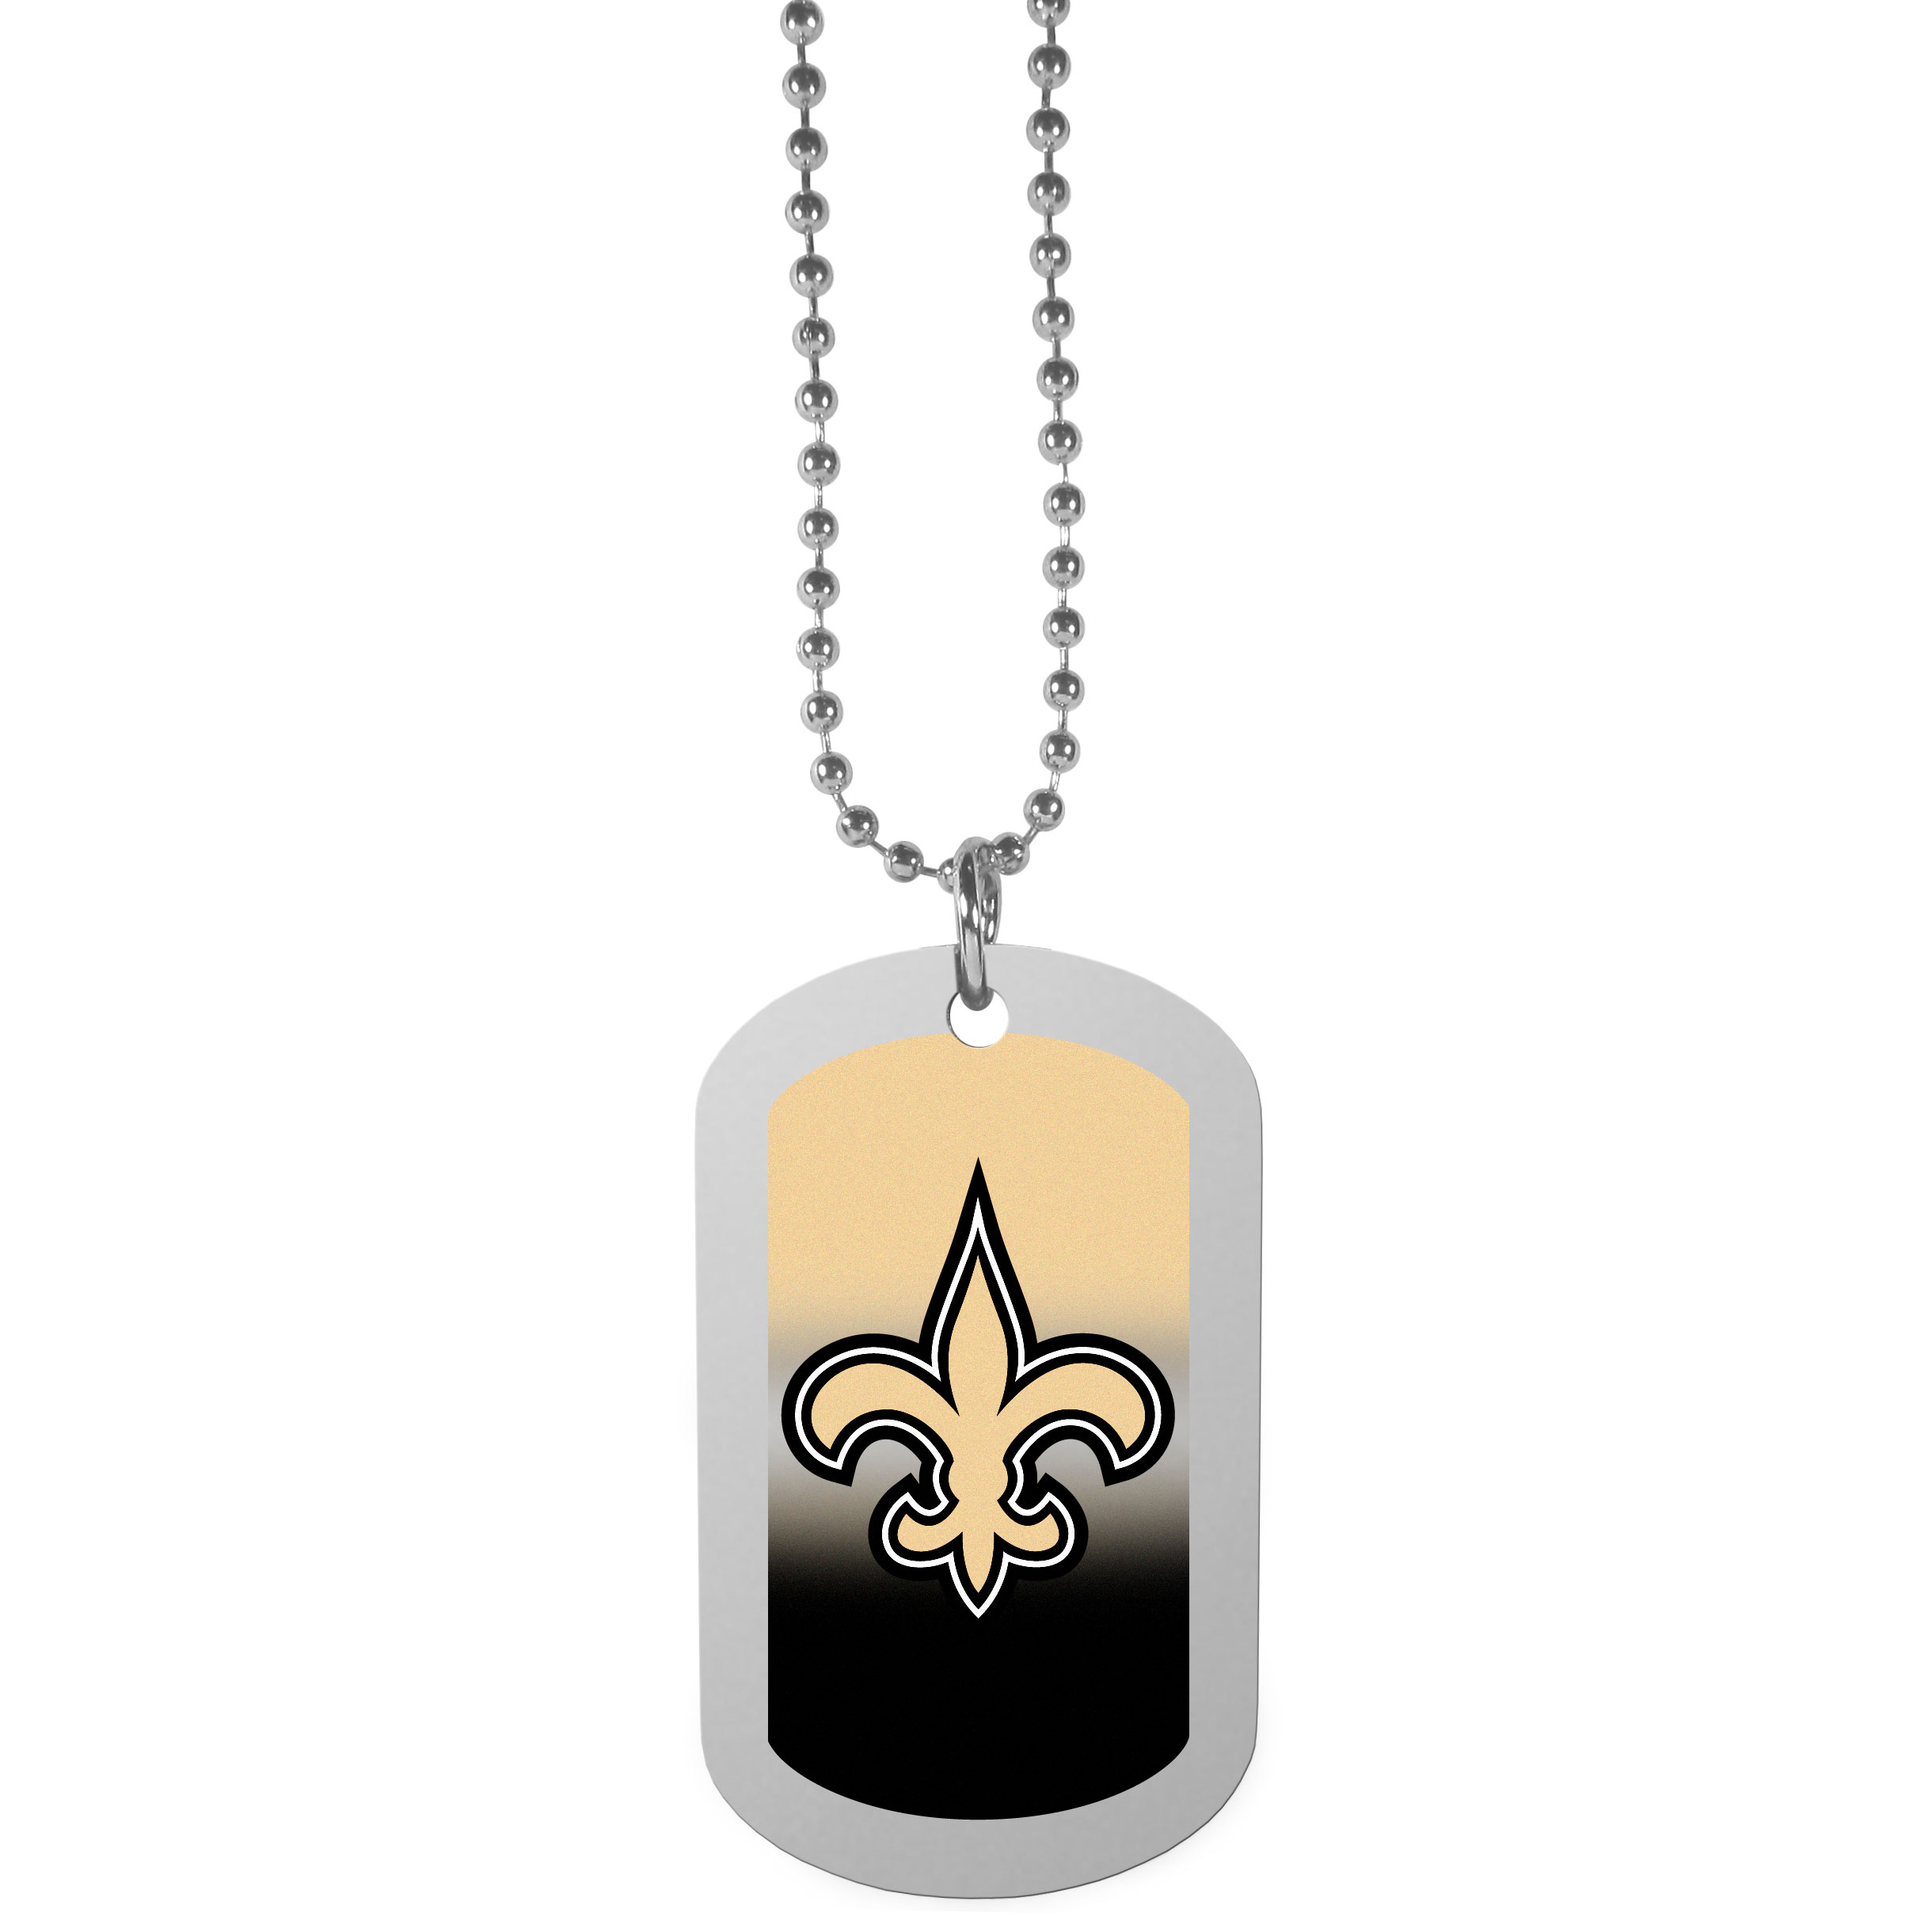 New Orleans Saints Team Tag Necklace - Dog tag necklaces are a fashion statement that is here to stay. The sporty version of the classic tag features a gradient print in team colors featuring a full color team logo over a high polish tag to create a bold and sporty look. The tag comes on a 26 inch ball chain with a ball and joint clasp. Any New Orleans Saints would be proud to wear this attractive fashion accessory.